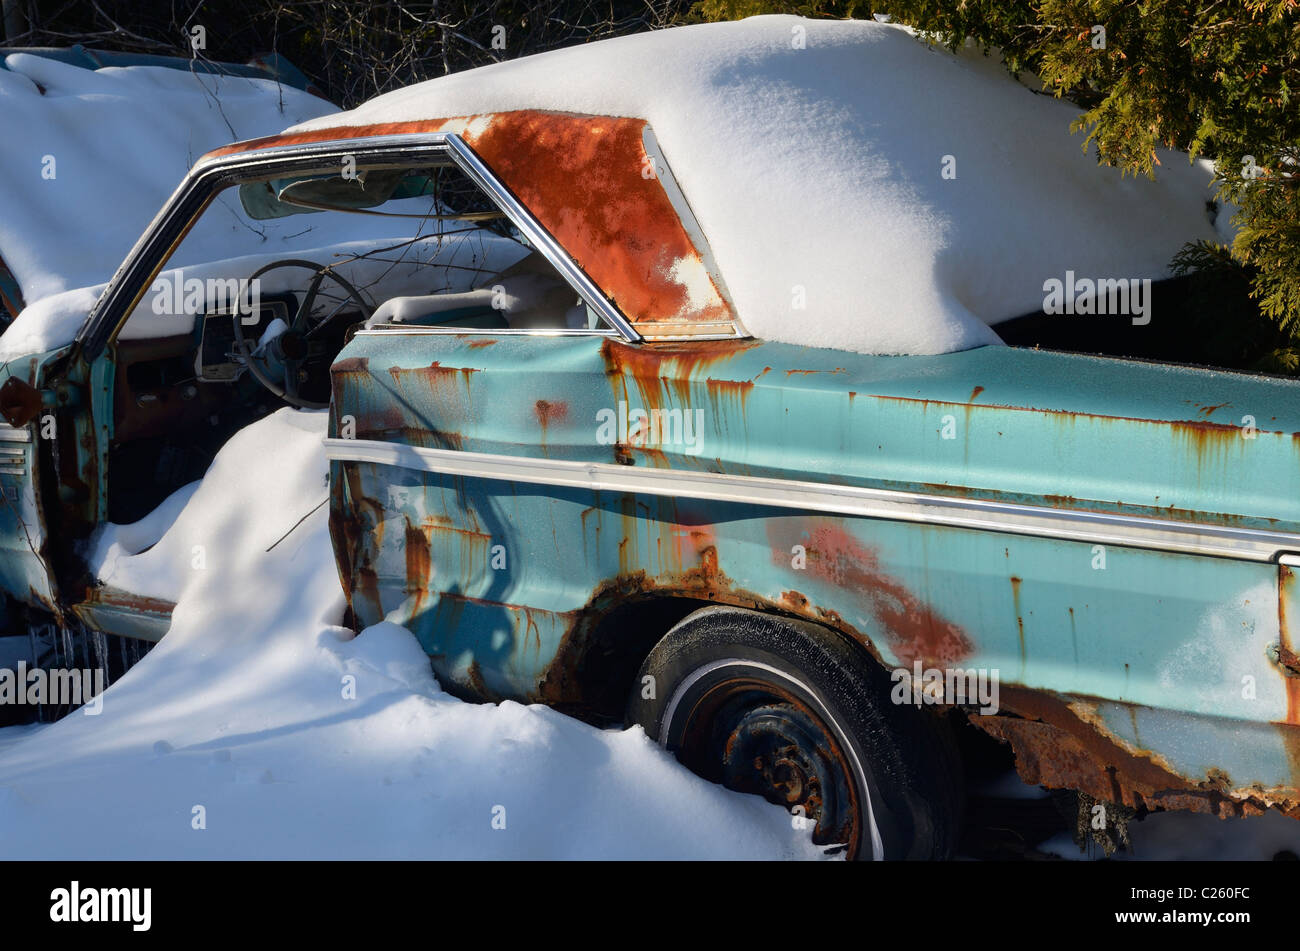 Fresh snow covering a rusting abandoned car on a frosty winter morning - Stock Image